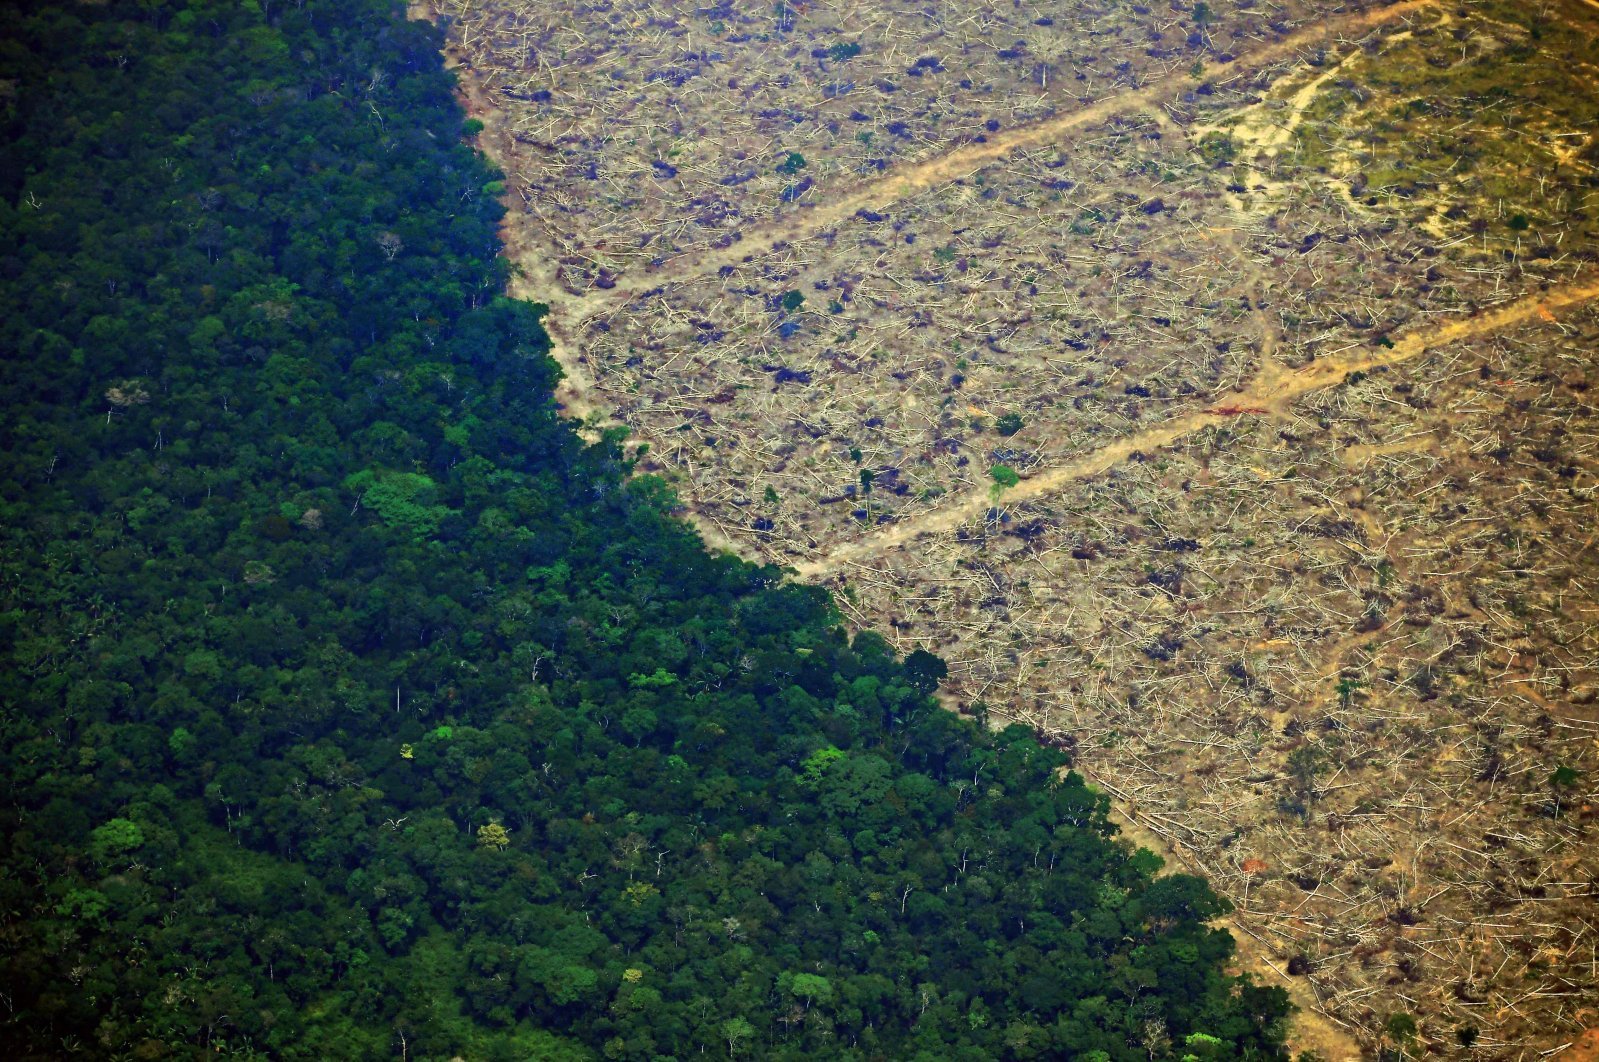 An aerial view of a deforested piece of land in the Amazon rainforest near an area affected by fires, 65 kilometers from Porto Velho, state of Rondonia, northern Brazil, Aug. 23, 2019. (AFP Photo)